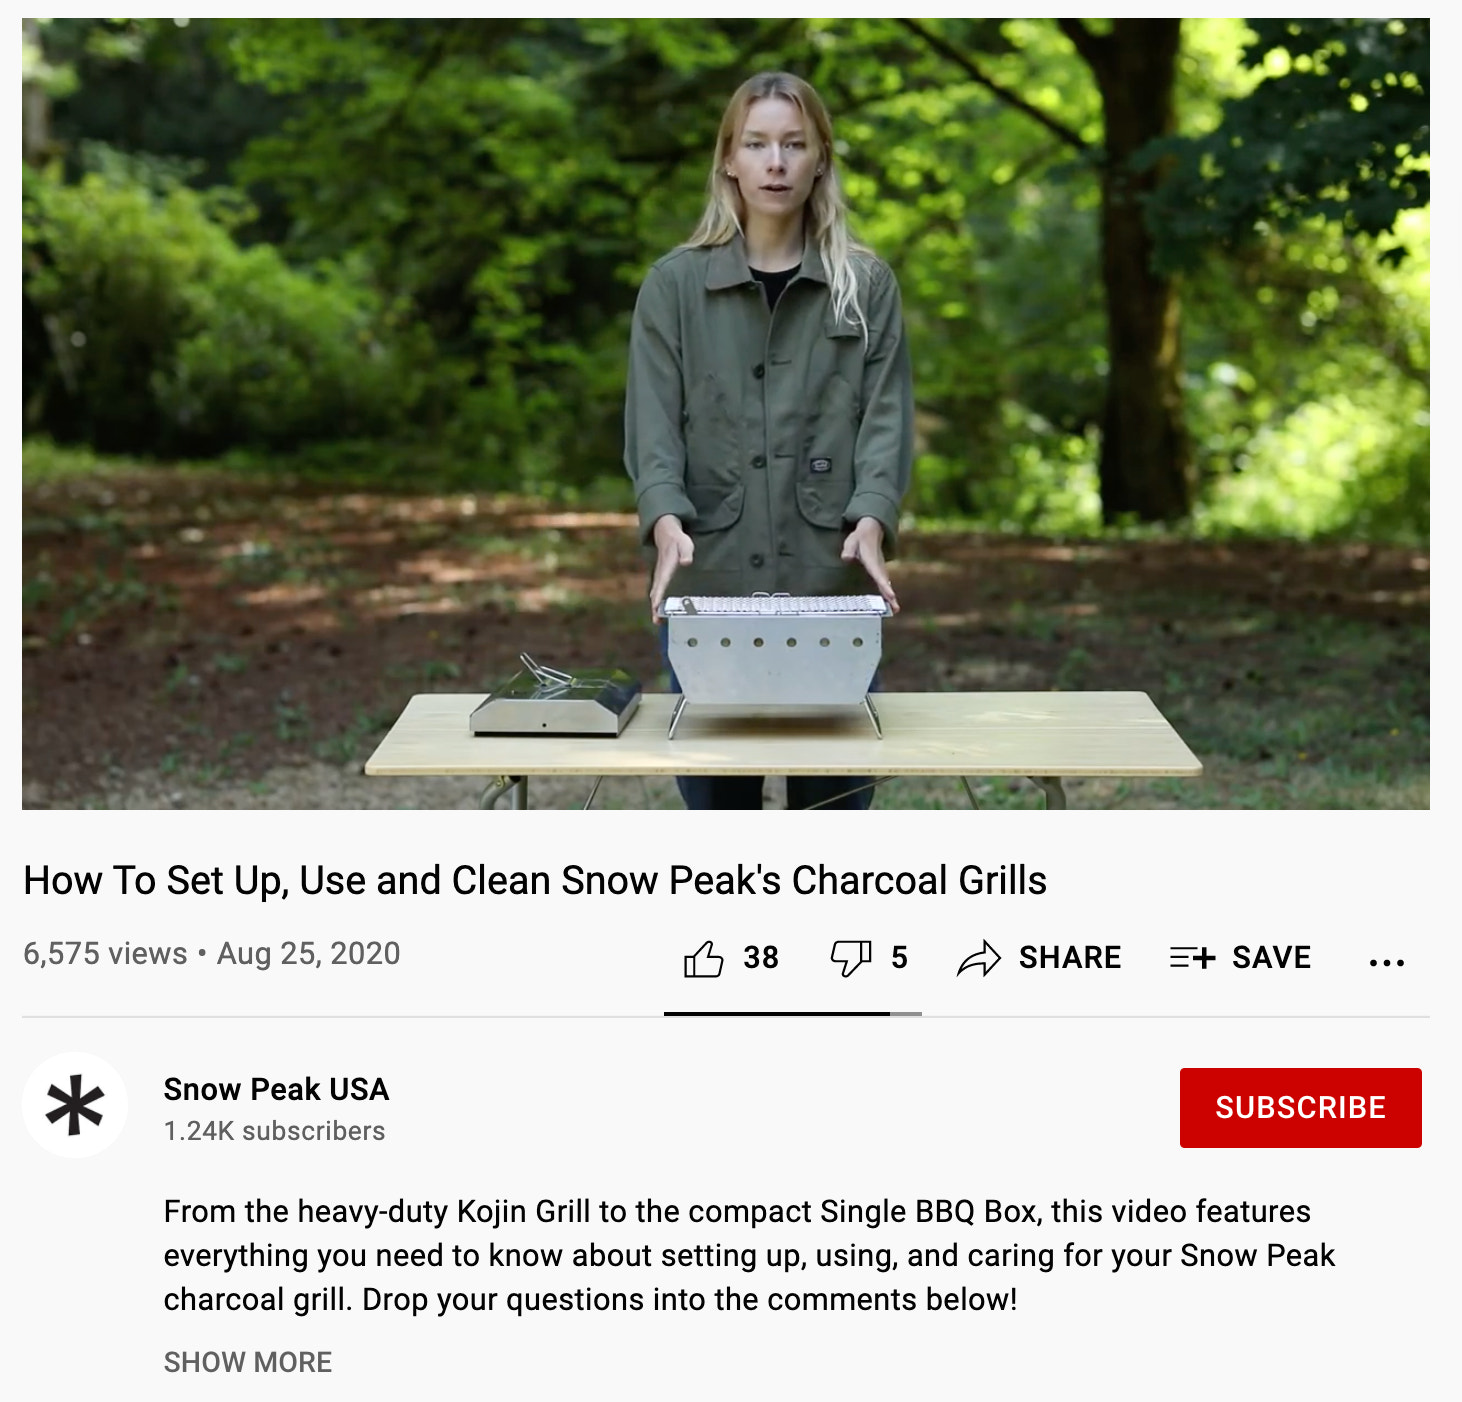 YouTube Channel, Snow Peak USA, example of a brand product tutorial video